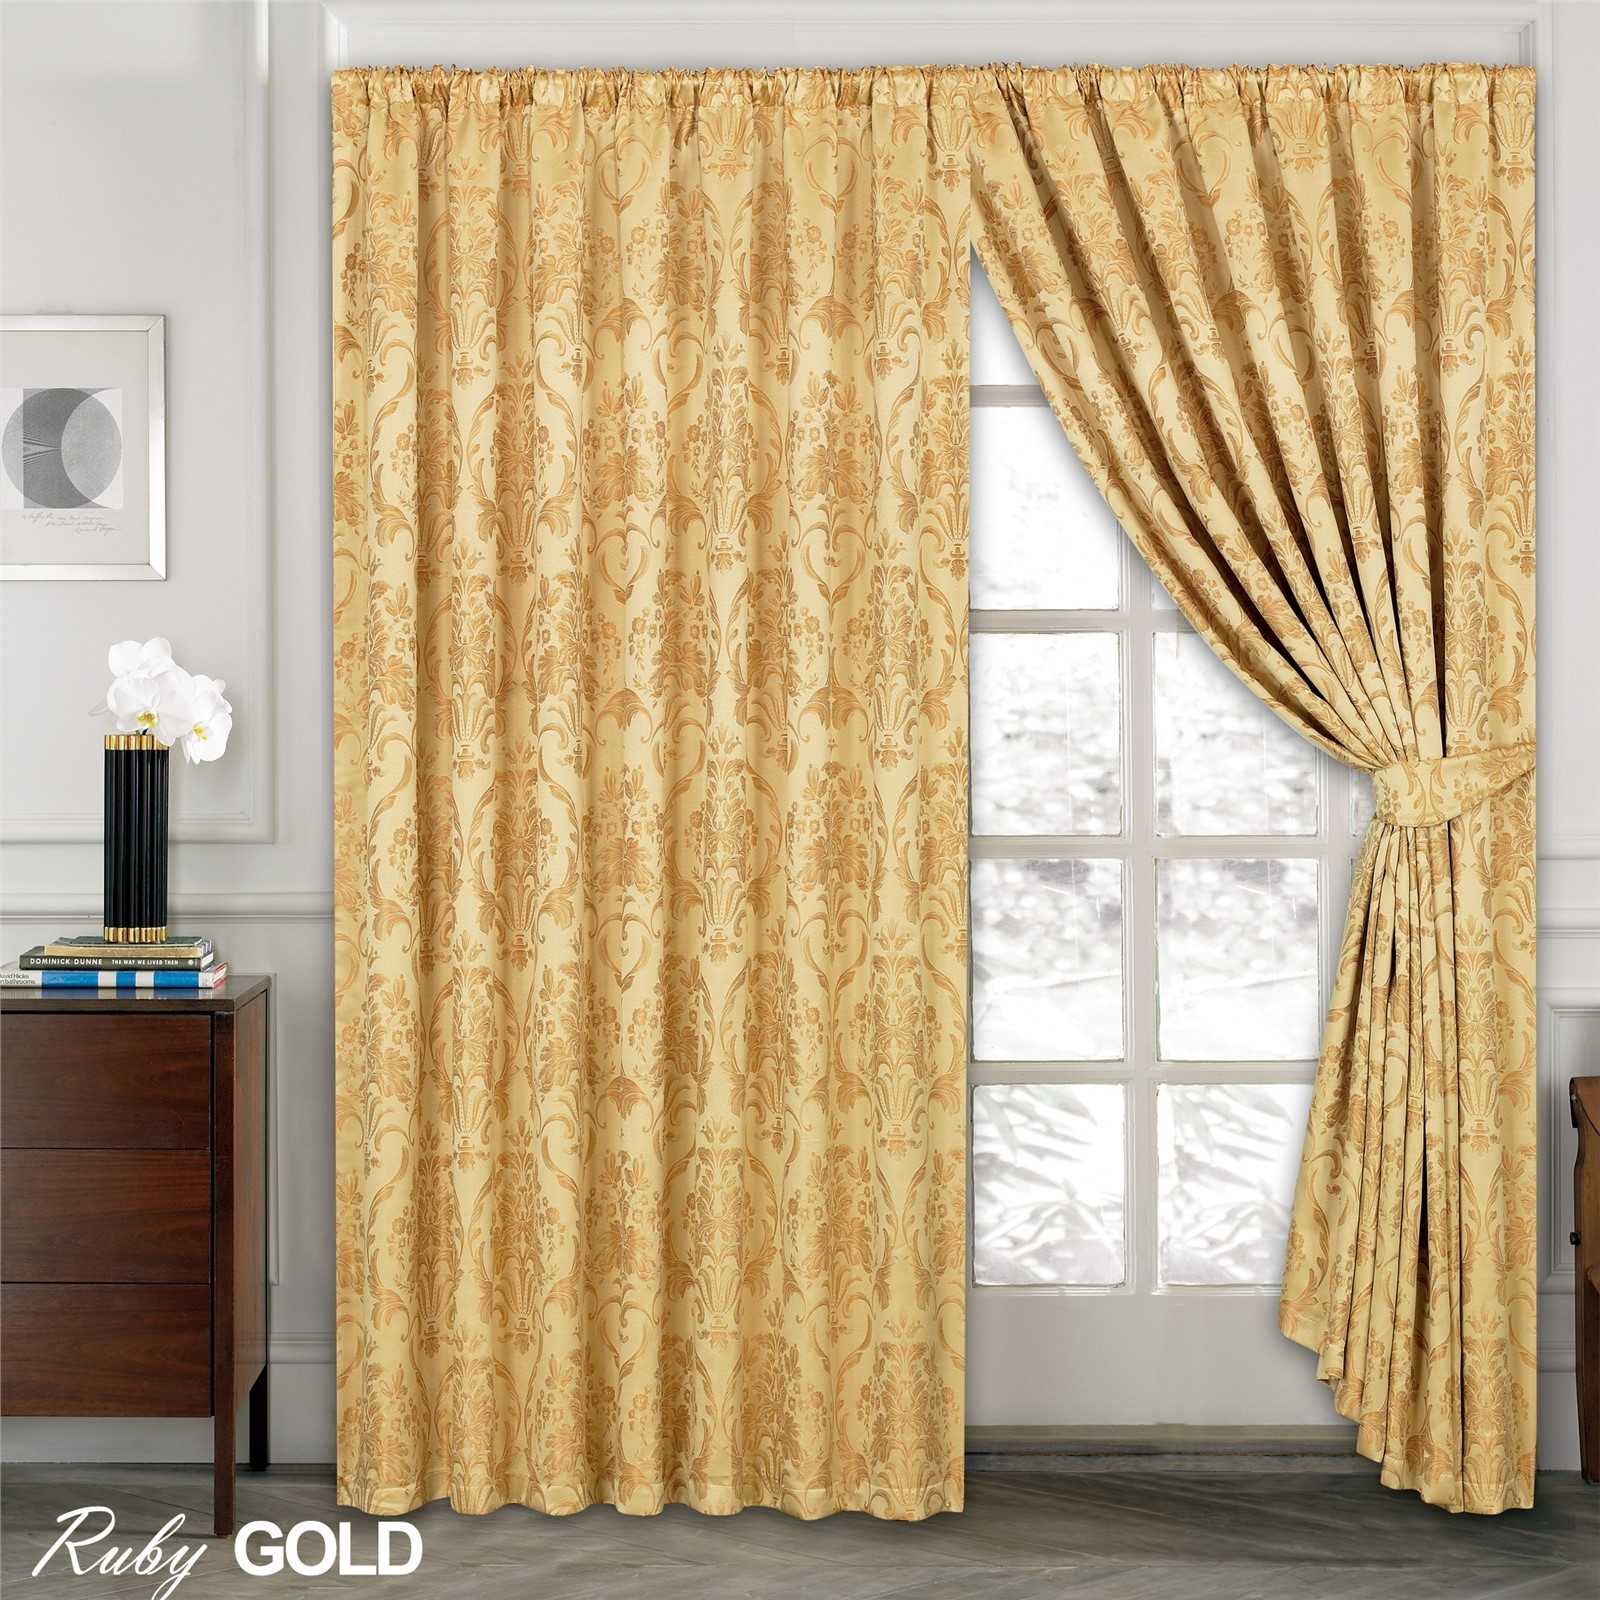 Luxury Jacquard Curtains Fully Lined Ready Made Tape Top Pencil Throughout Pencil Pleat Curtains (View 2 of 15)